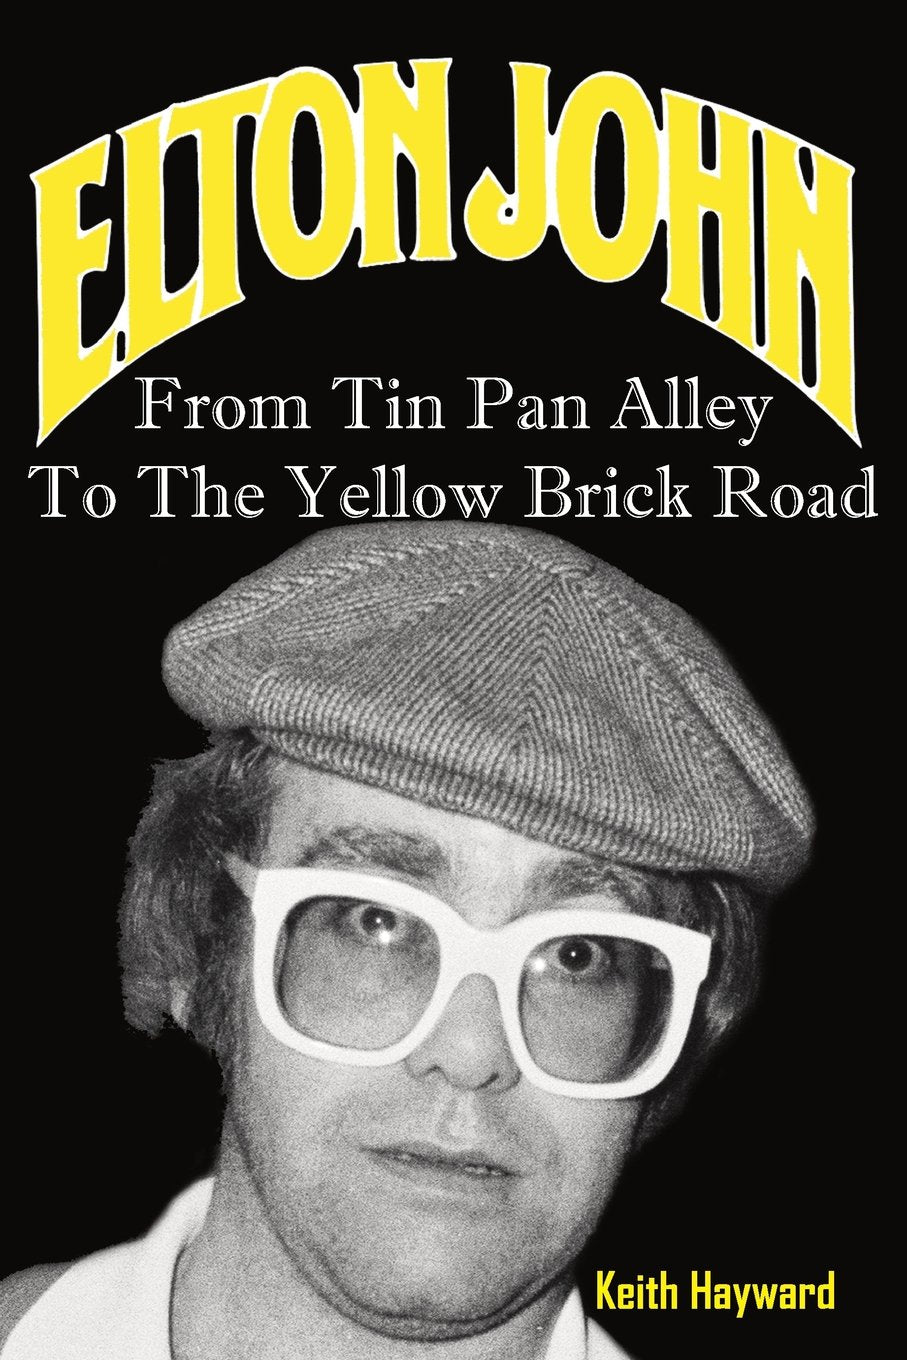 Elton John - Keith Hayward [BOOK]